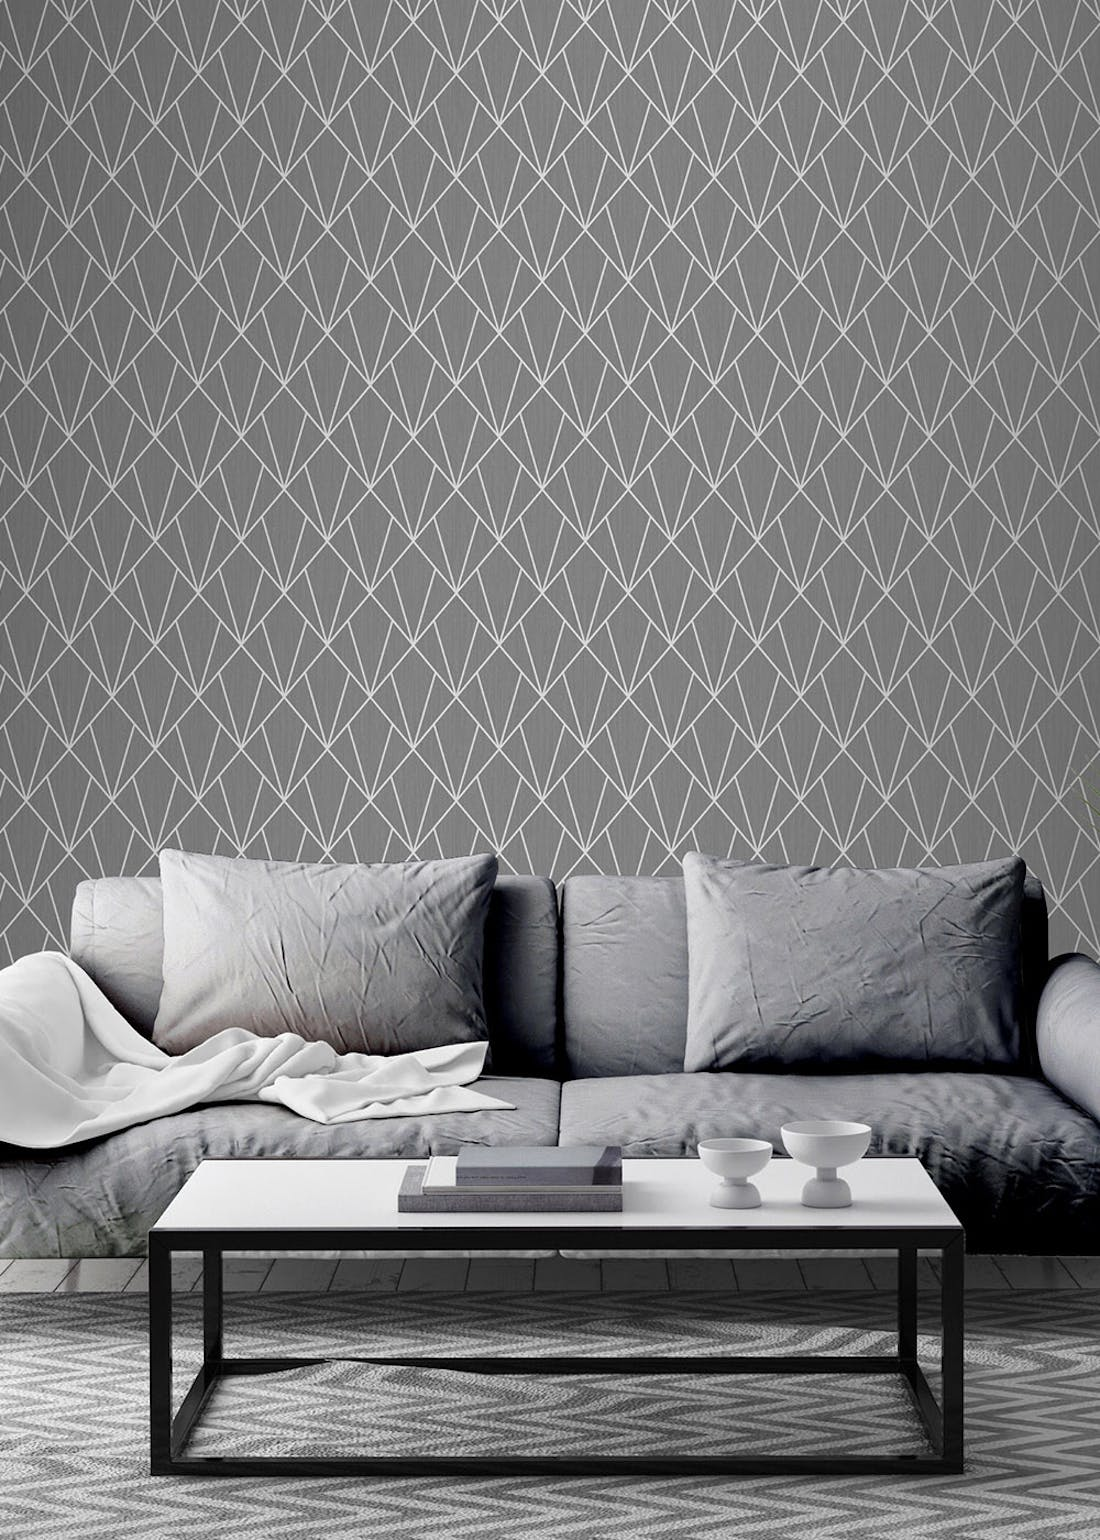 Muriva Indra Charcoal Wallpaper (10.05m x 53cm)